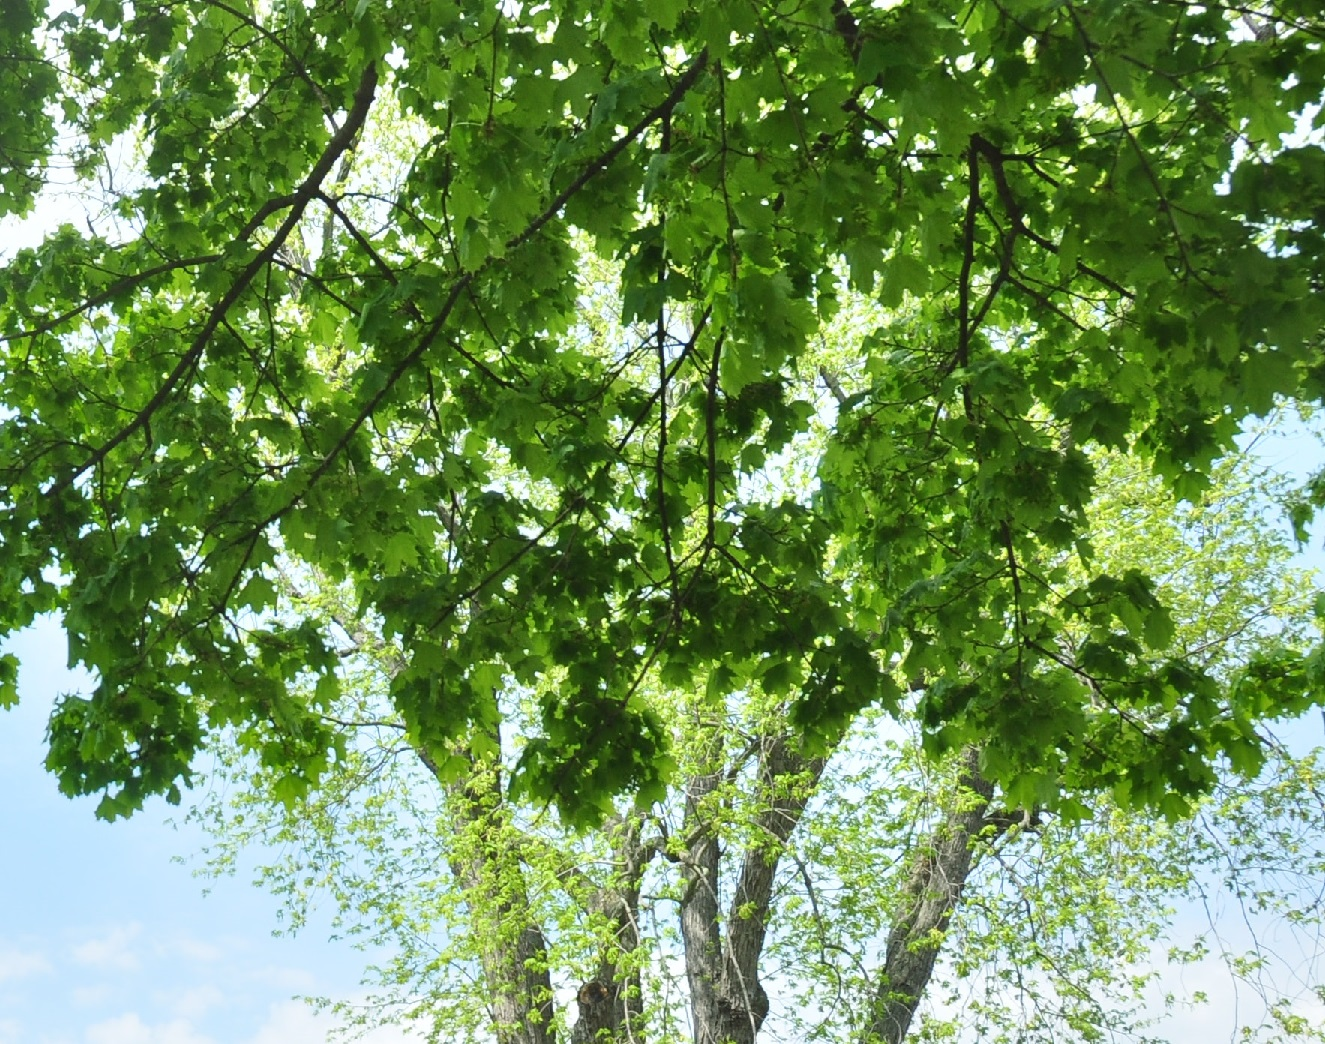 The Gypsy Moth & Emerald Ash Borer: What You Need To Know